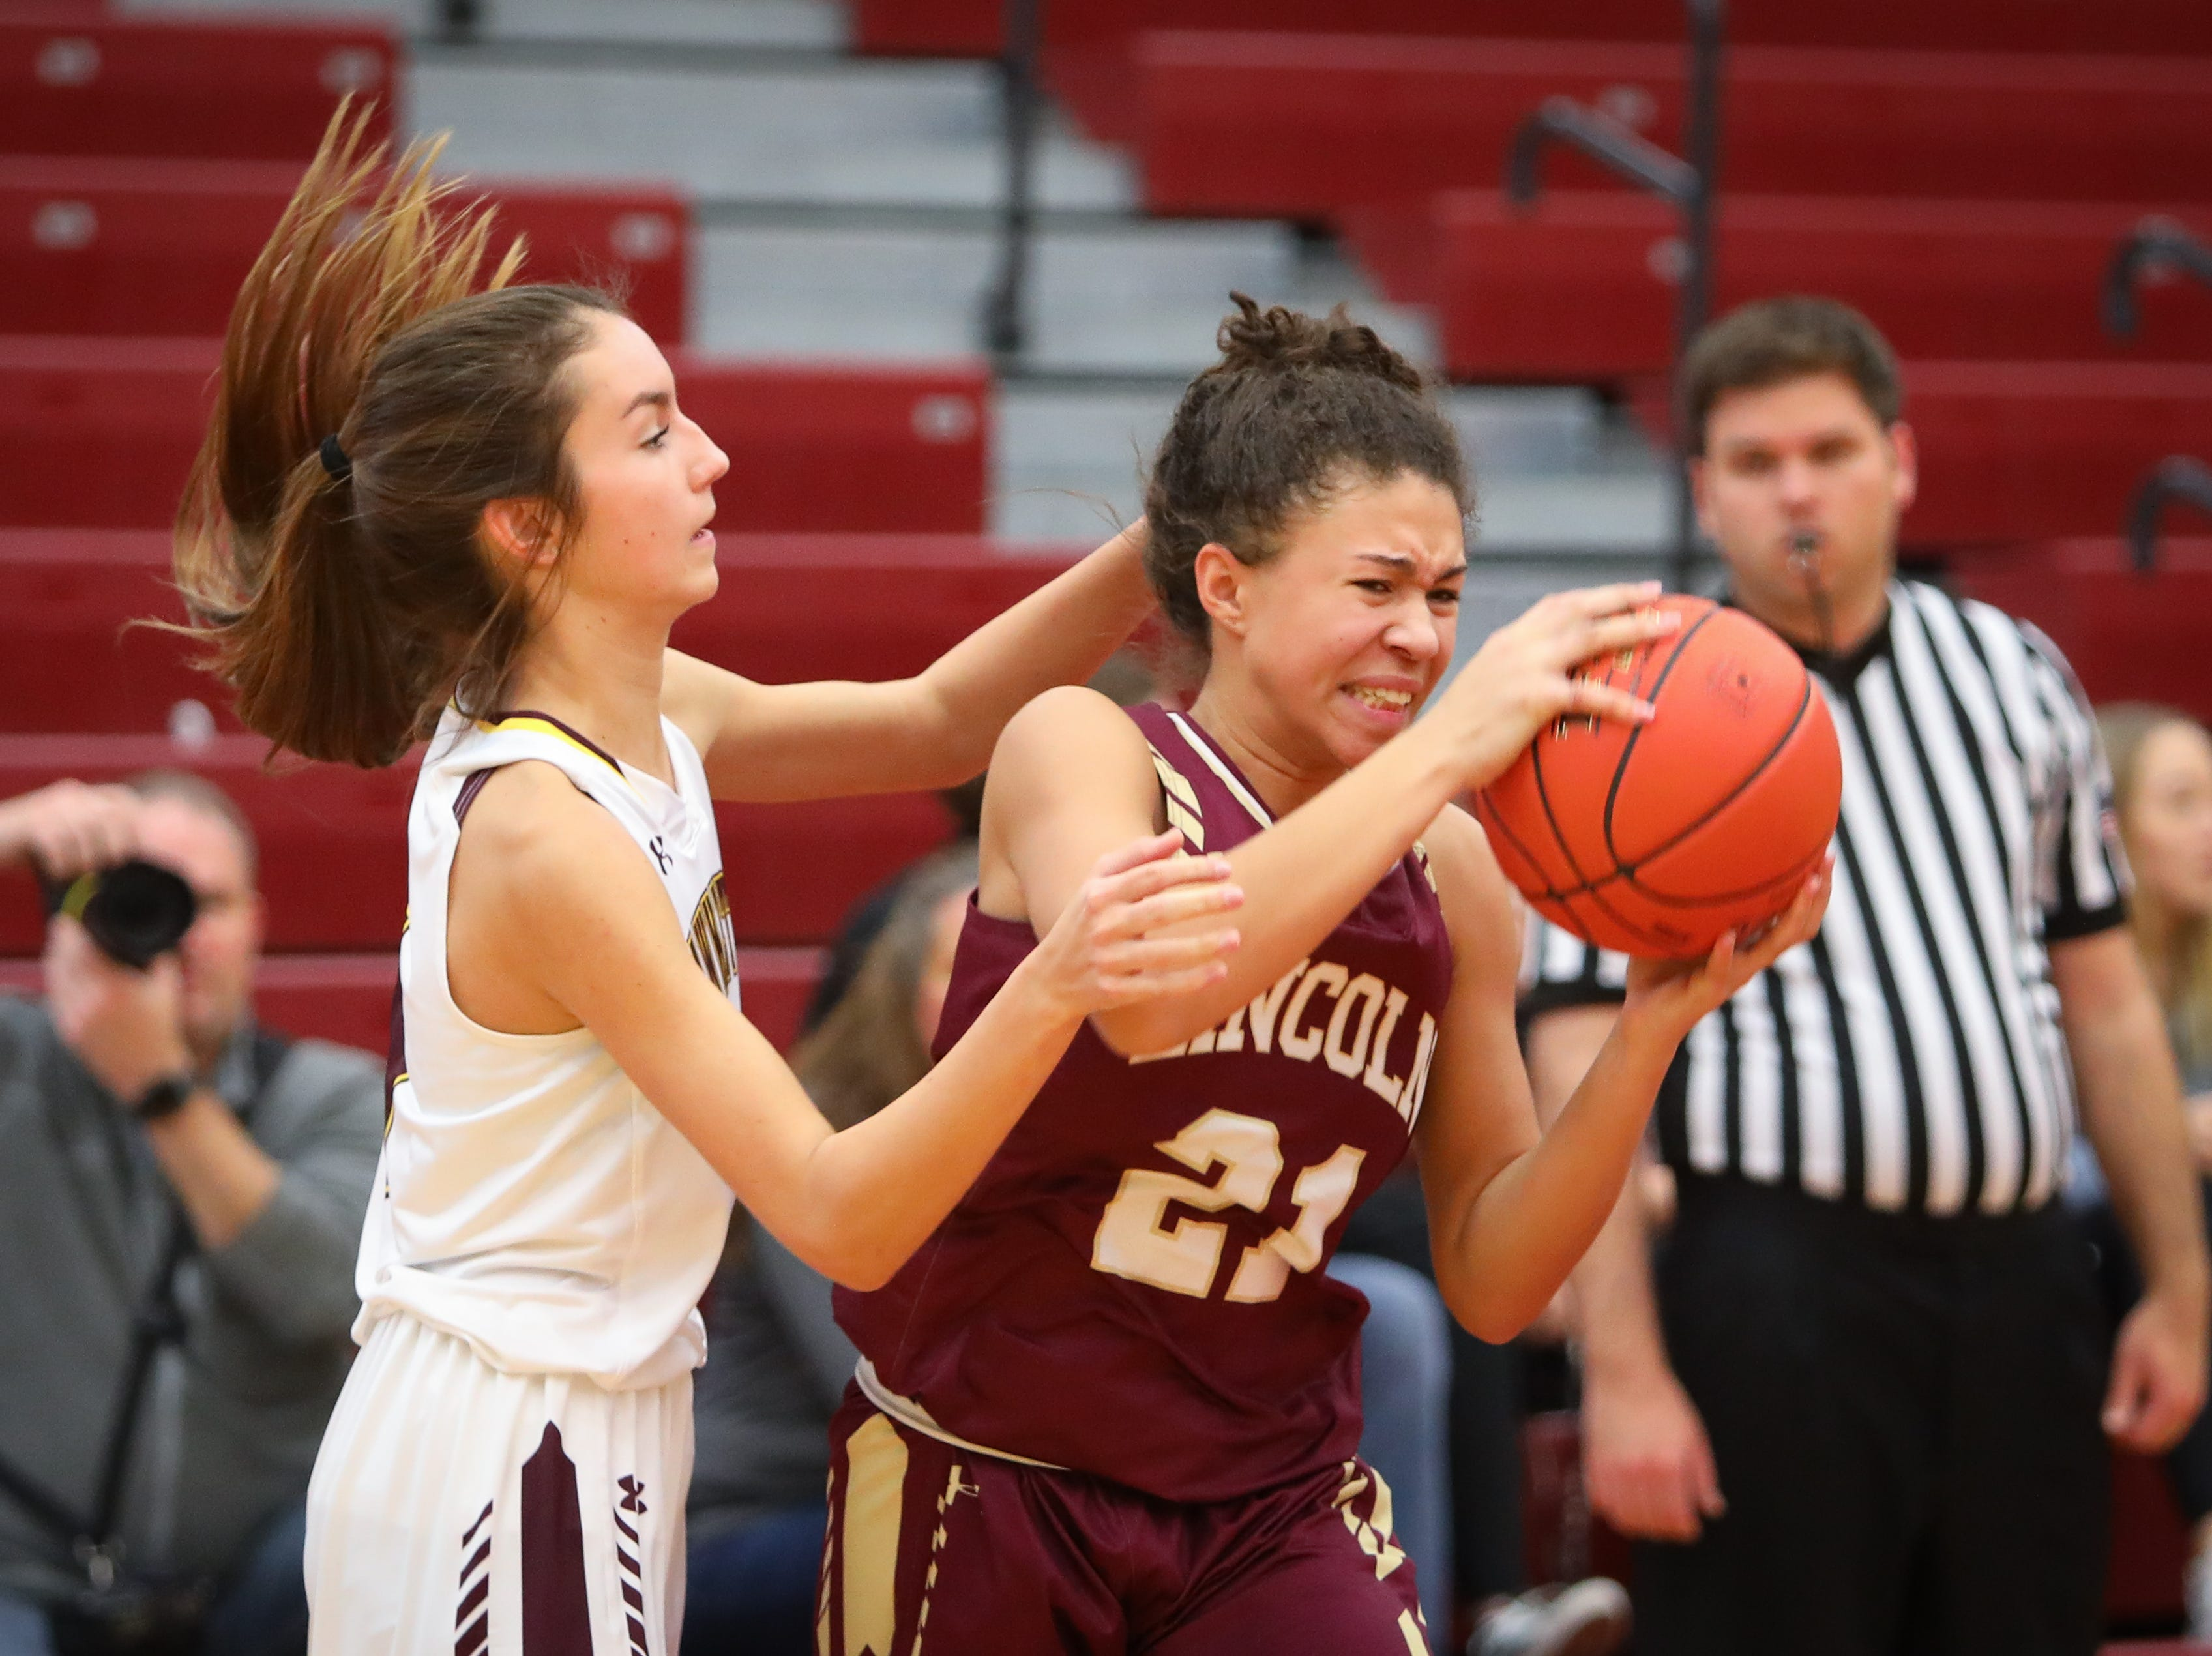 Lincoln sophomore Jalyiah Miller keeps the ball away from Ankeny junior Kayla Pitz during a girls high school basketball game between the Lincoln Railsplitters and the Ankeny Hawks at Ankeny High School on Dec. 4, 2018 in Ankeny, Iowa.